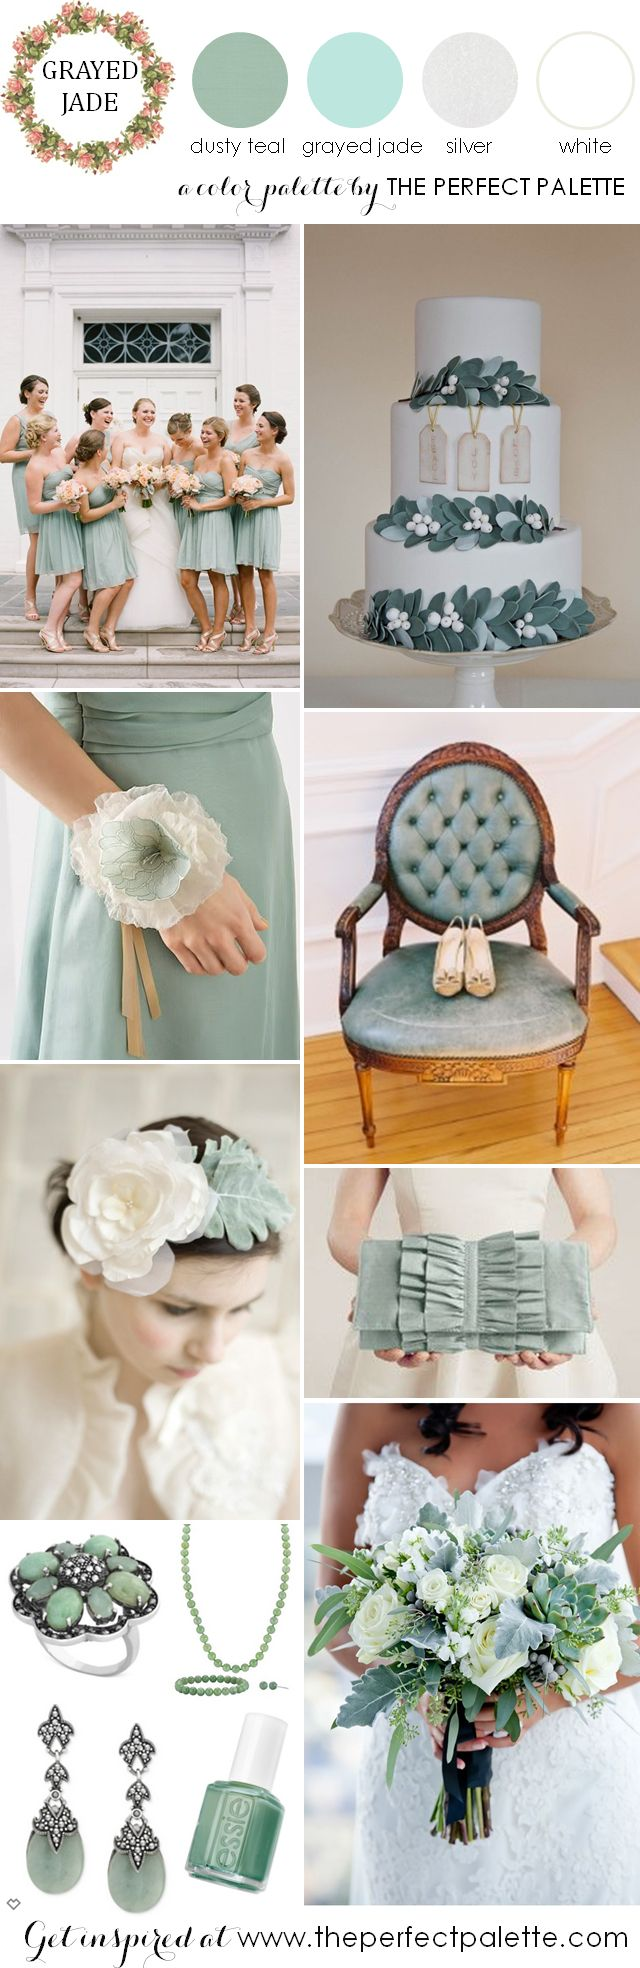 best bem bolado images on pinterest crafts home and accessories